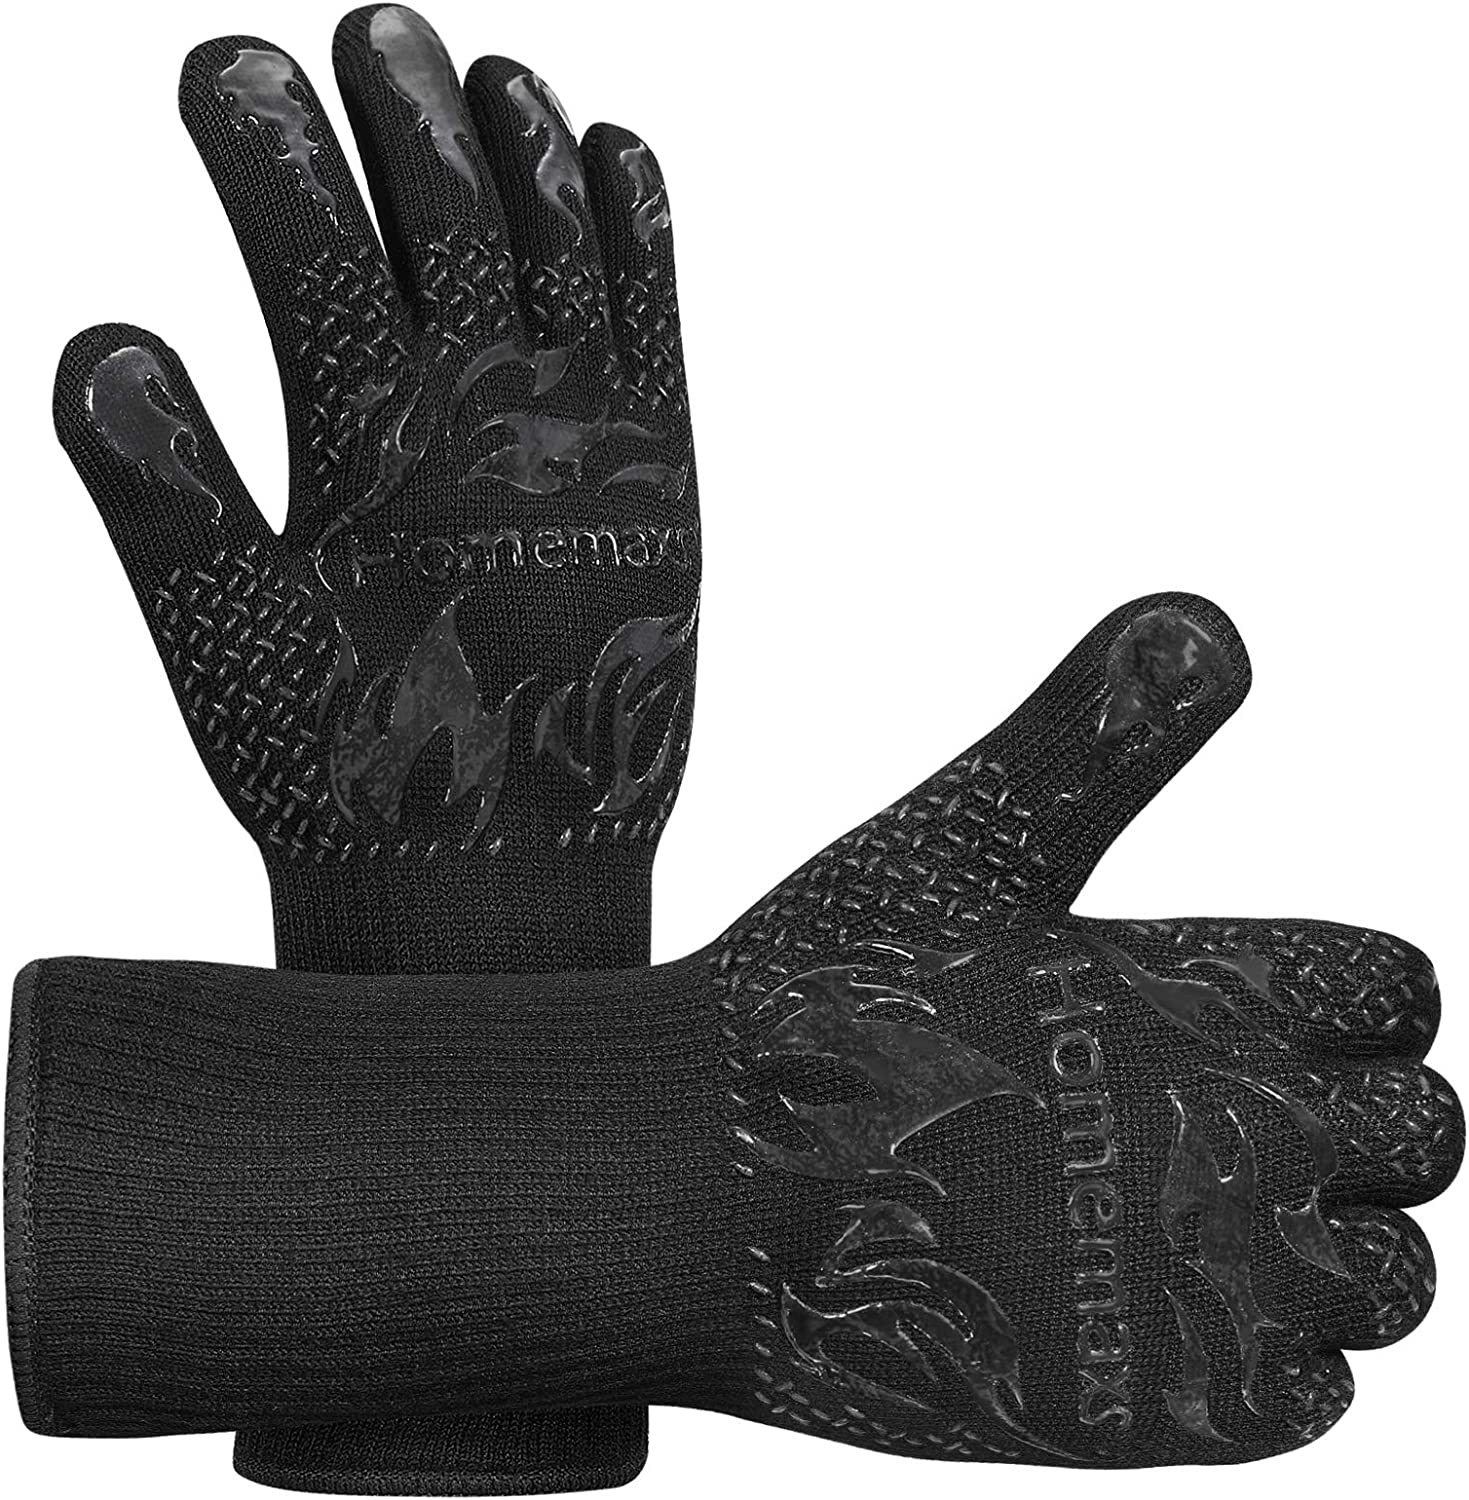 Homemaxs BBQ Gloves 1472℉ Extreme Heat Resistant Grill Gloves, Food Grade Kitchen Oven Mitts, Silicone Non-Slip Cooking Gloves for Barbecue, Cooking, Baking, Welding, Cutting, 14 Inch (3-Black)